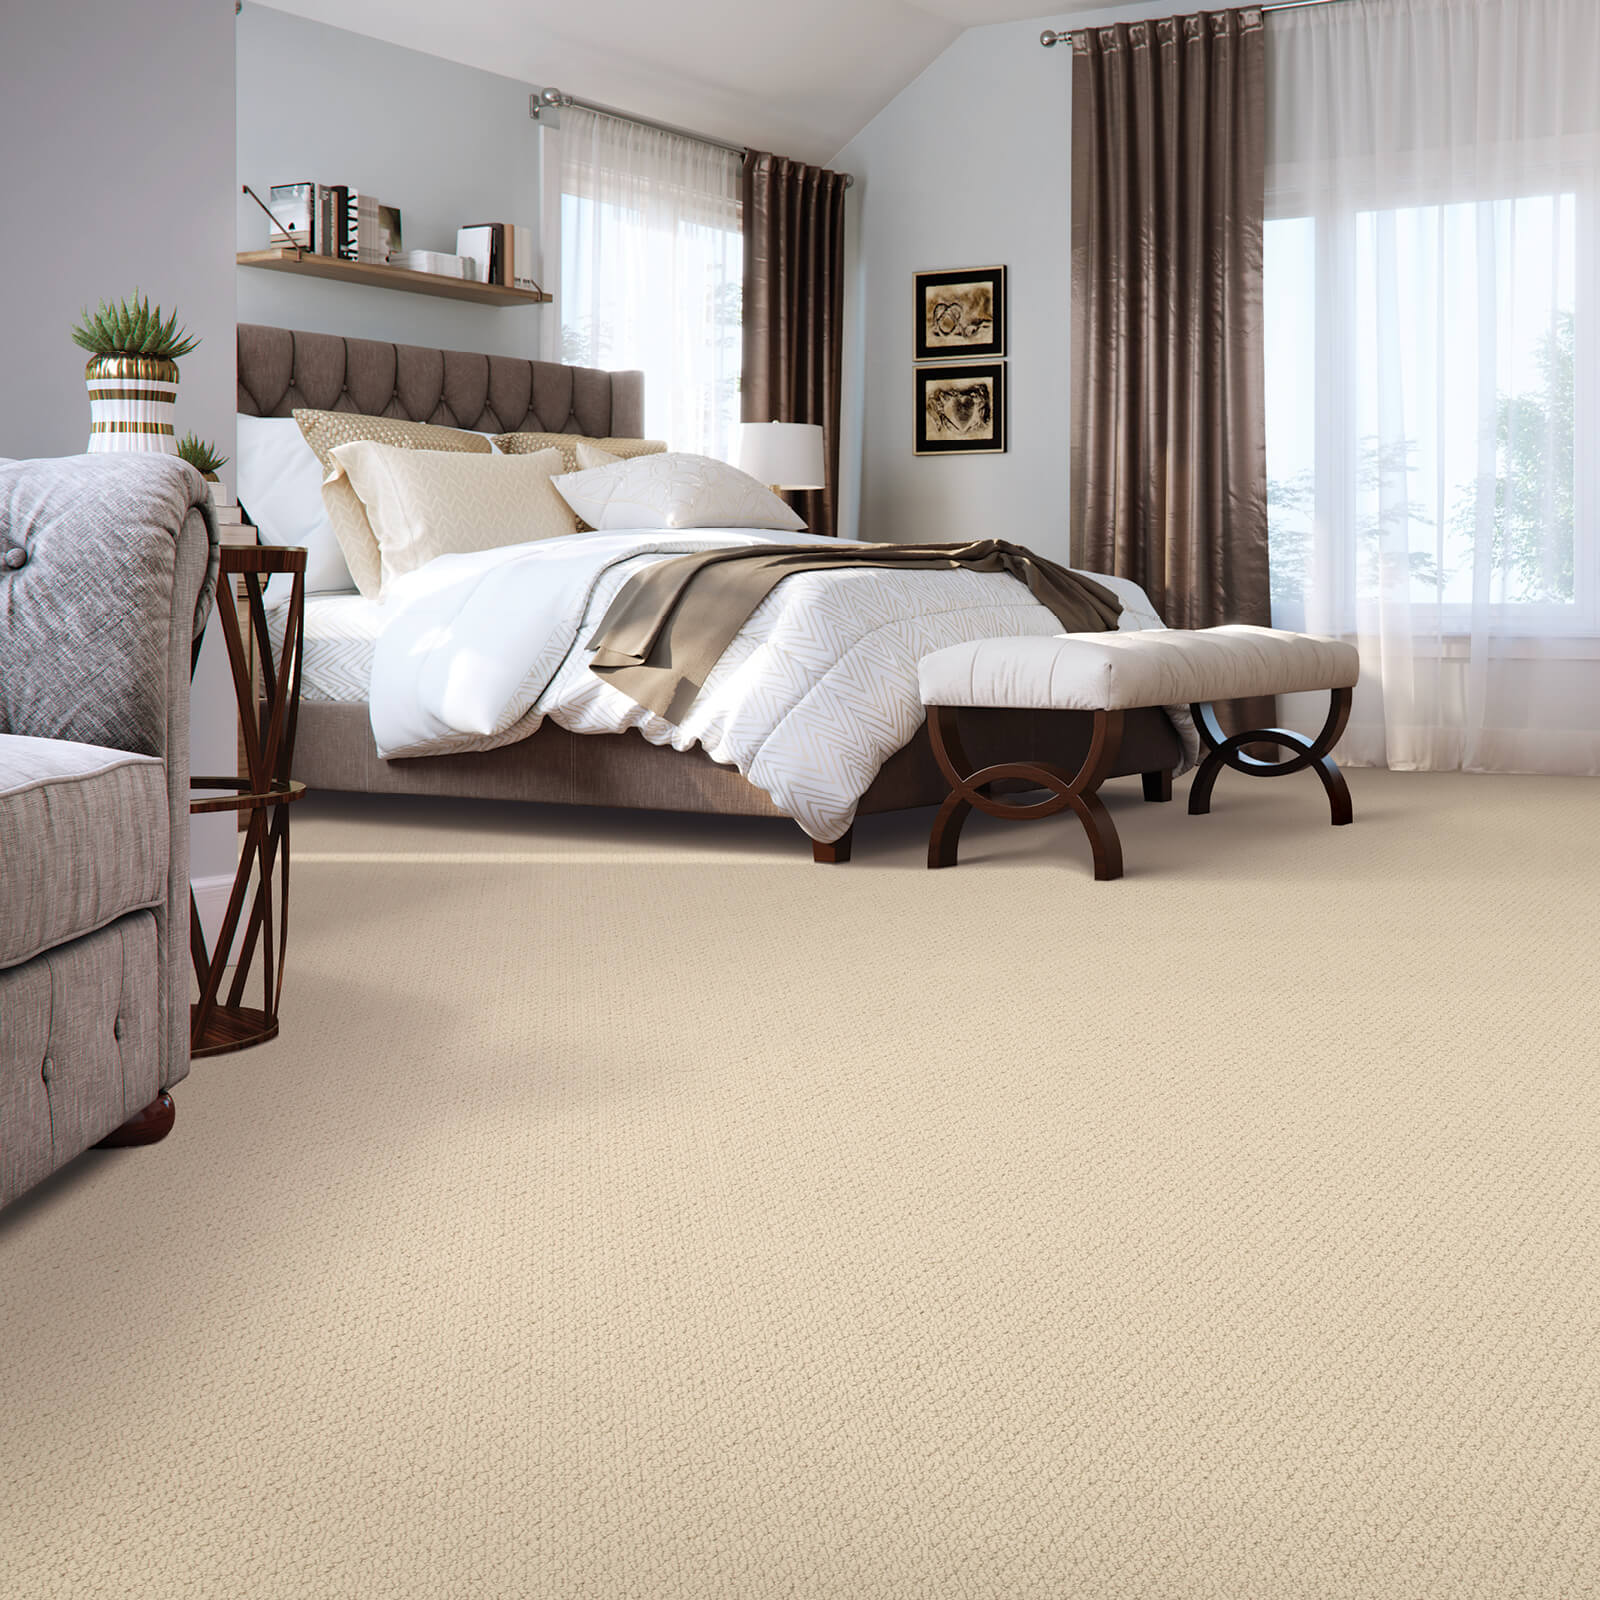 Bedroom Carpet | All Floors Design Centre